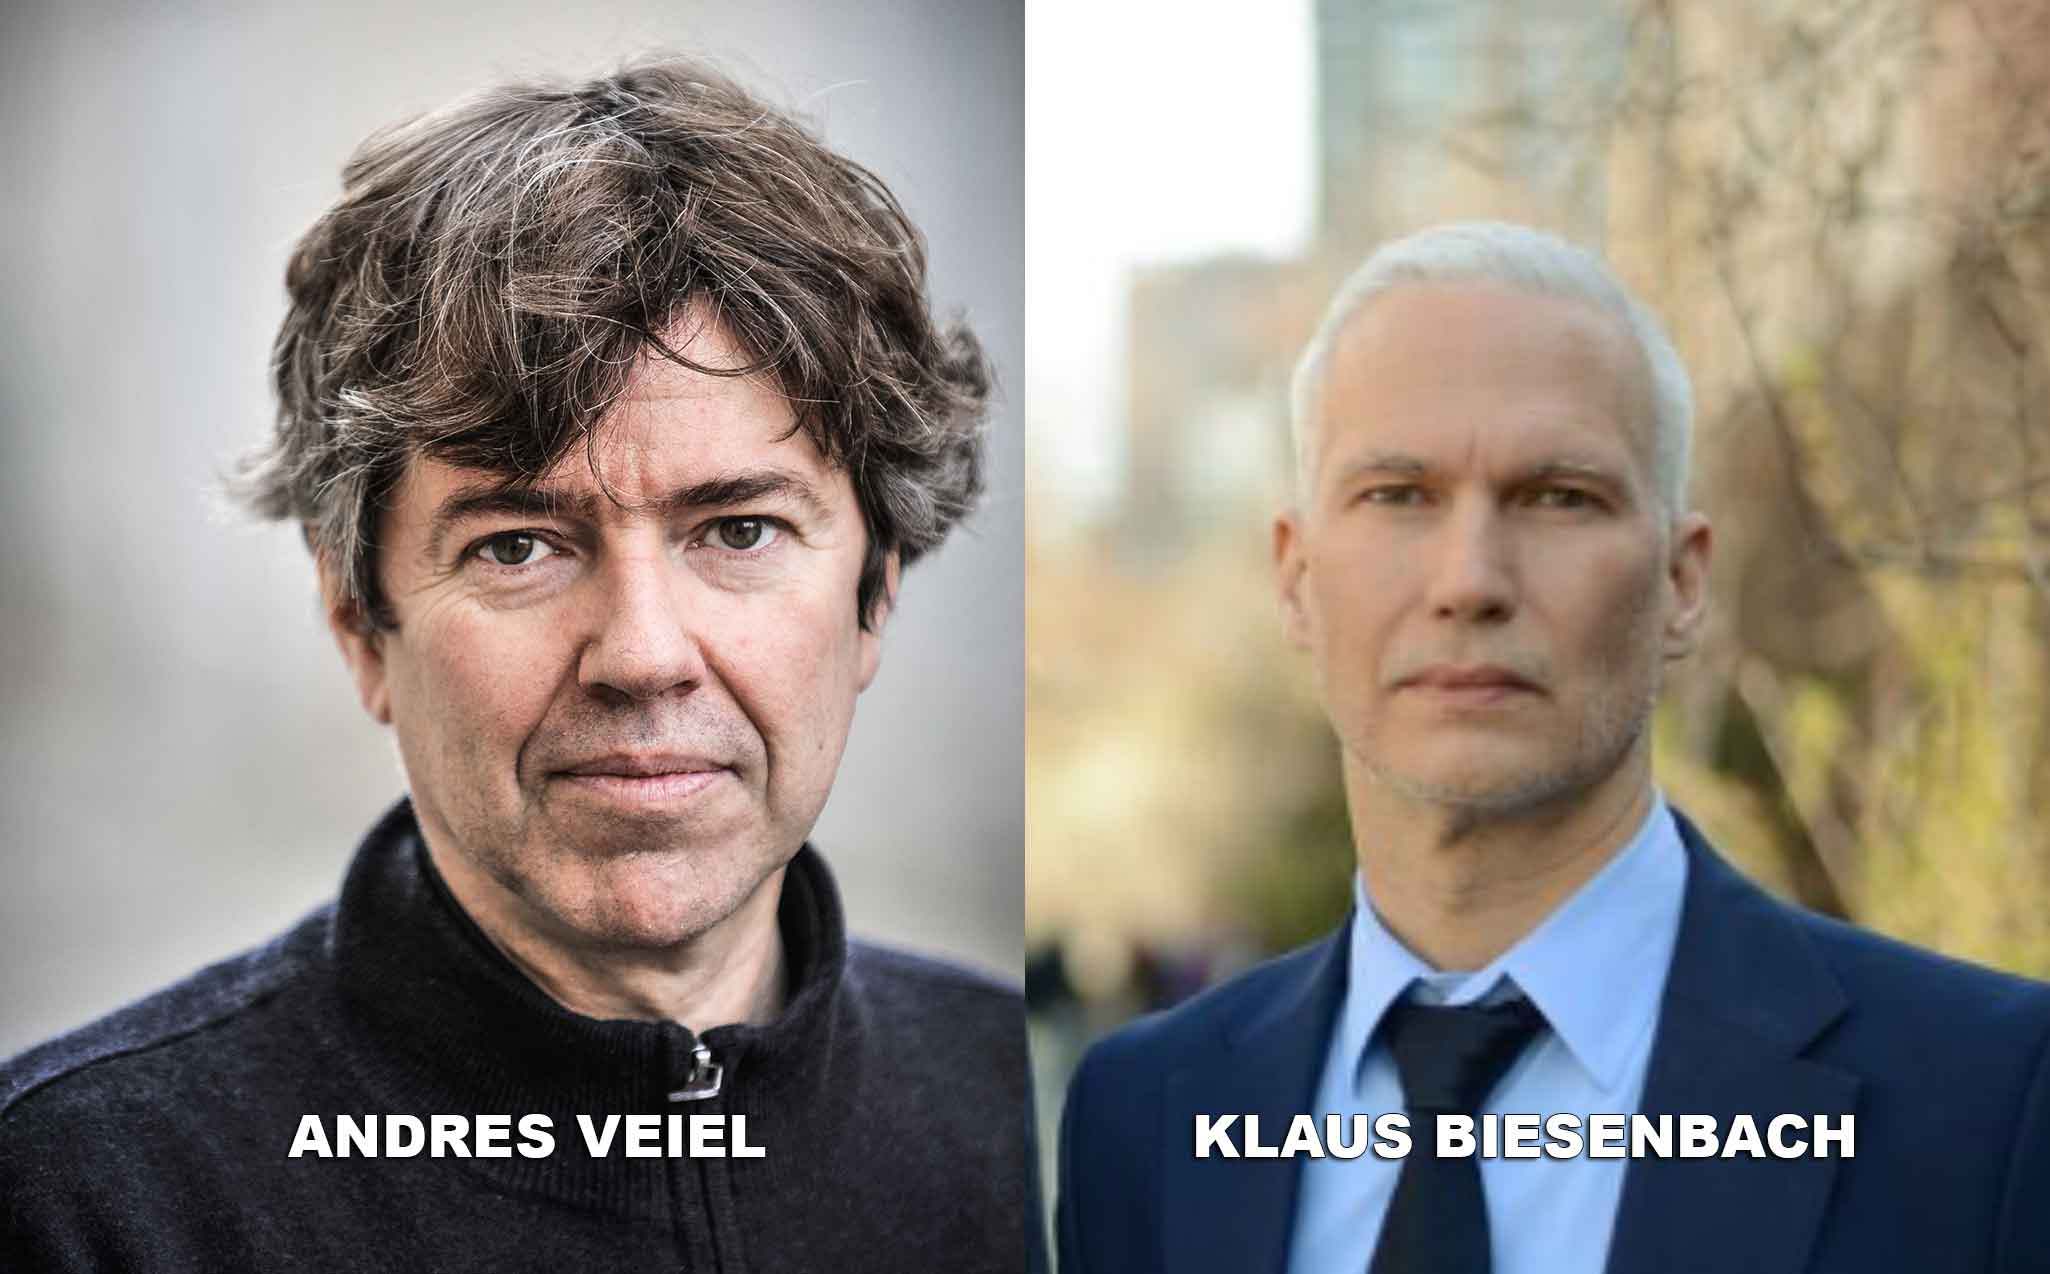 Q&A with BEUYS Filmmaker Andres Veiel & Klaus Biesenbach, Director of MoMA PS1 & Chief Curator at Large of The Museum of Modern Art